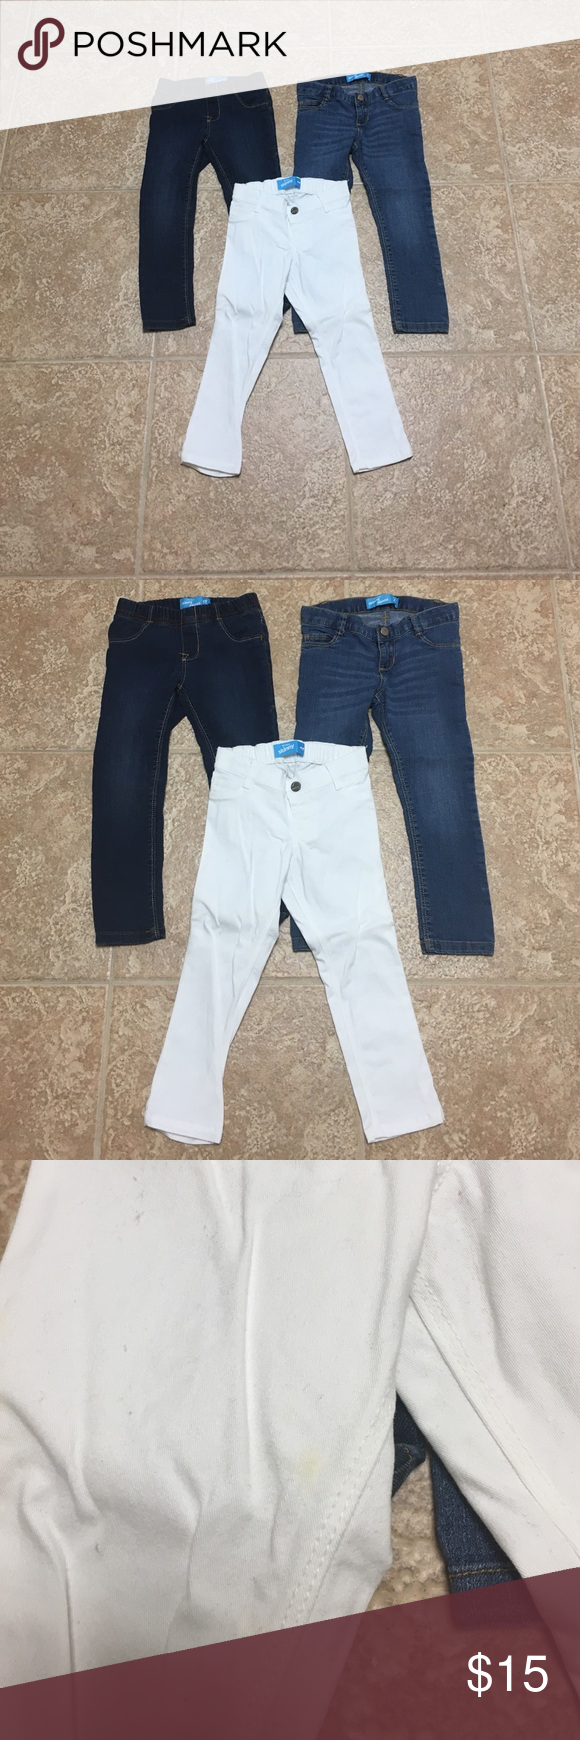 Toddler Jeans Bundle This listing includes 3 different wash jeans- dark wash, light wash, and white. The white jeans do have a small yellow stain in the front which is shown in the pictures but overall still in good condition the other two denim jeans are in perfect condition. Old Navy Bottoms Jeans